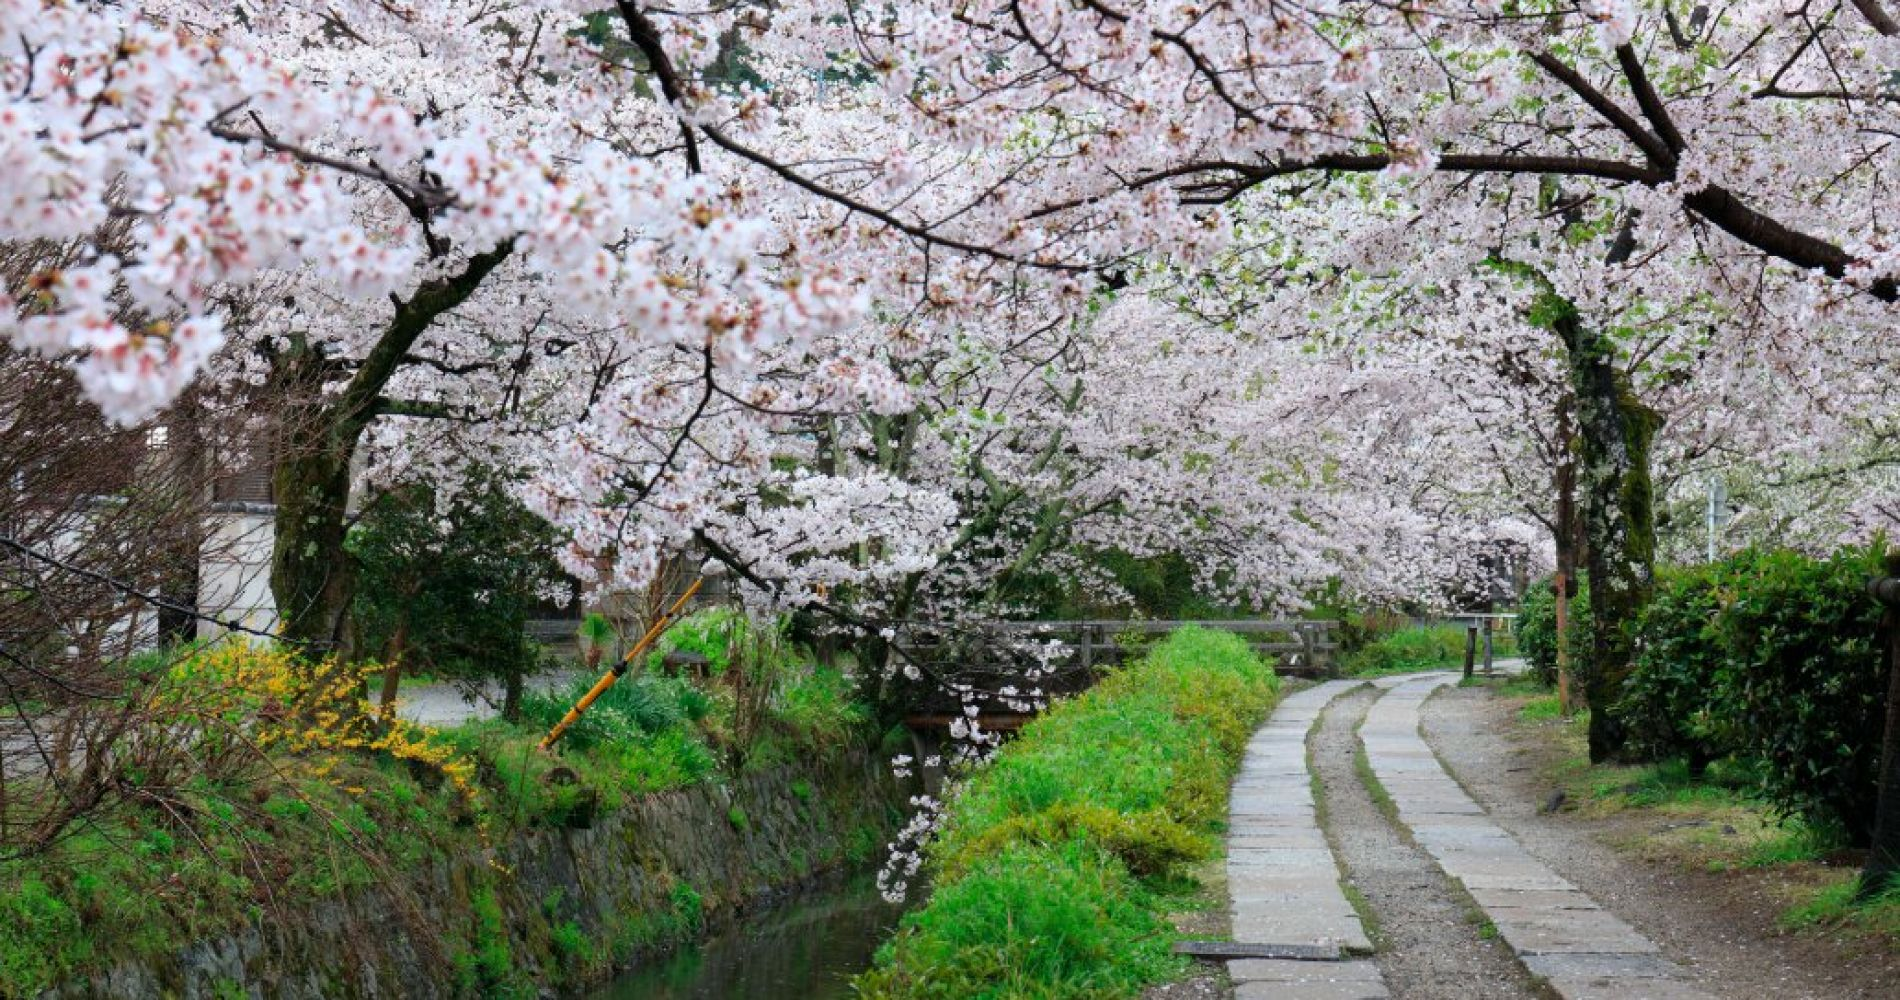 Philosopher's Path During Cherry Blossom